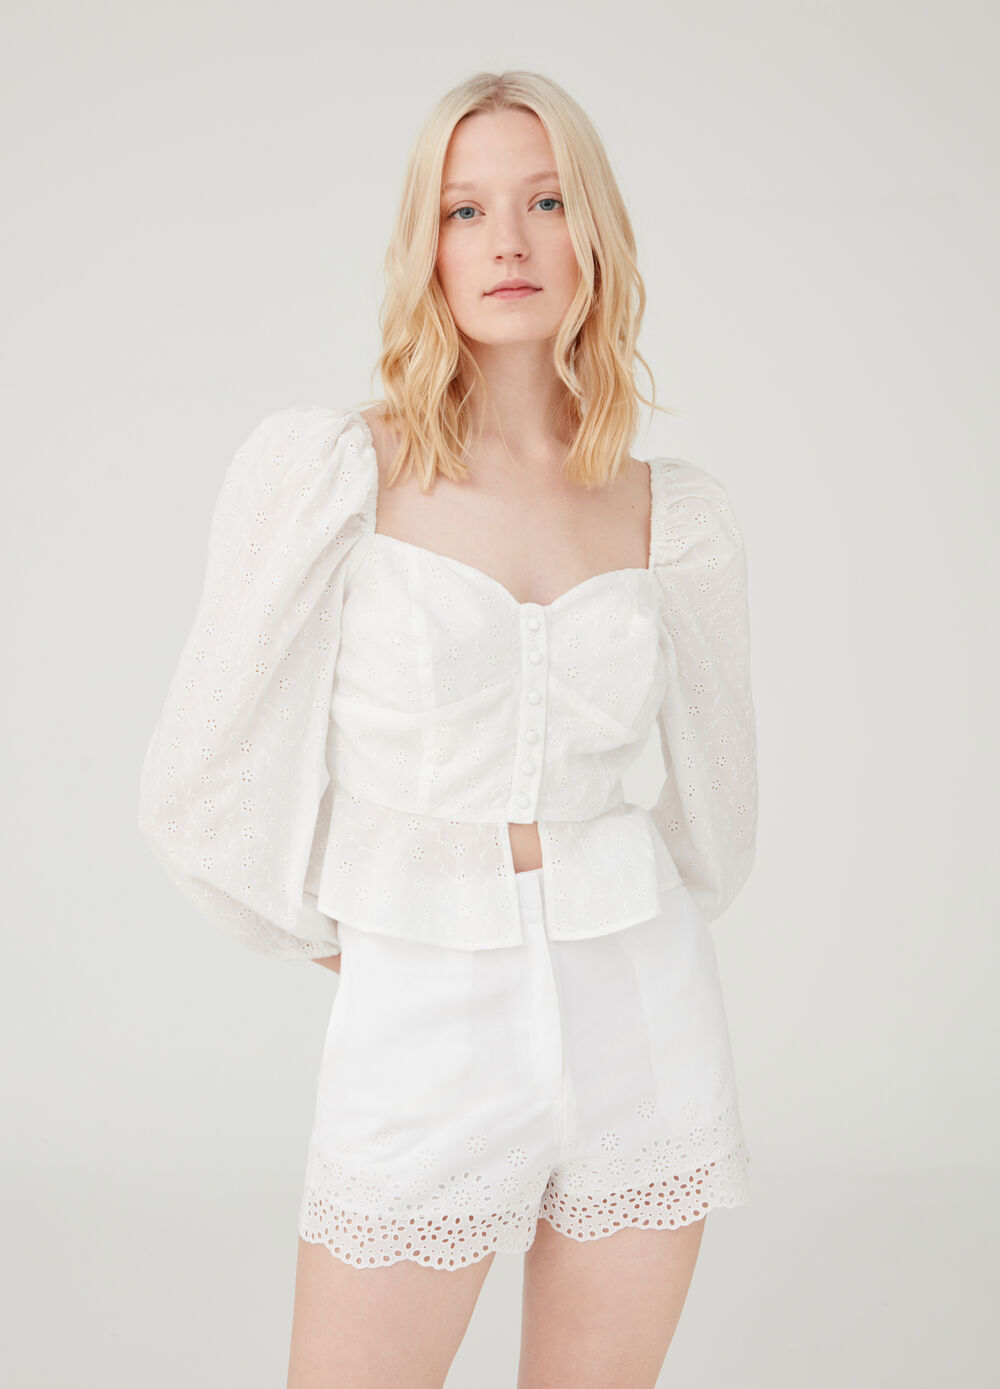 Broderie anglaise lace shirt with flounce